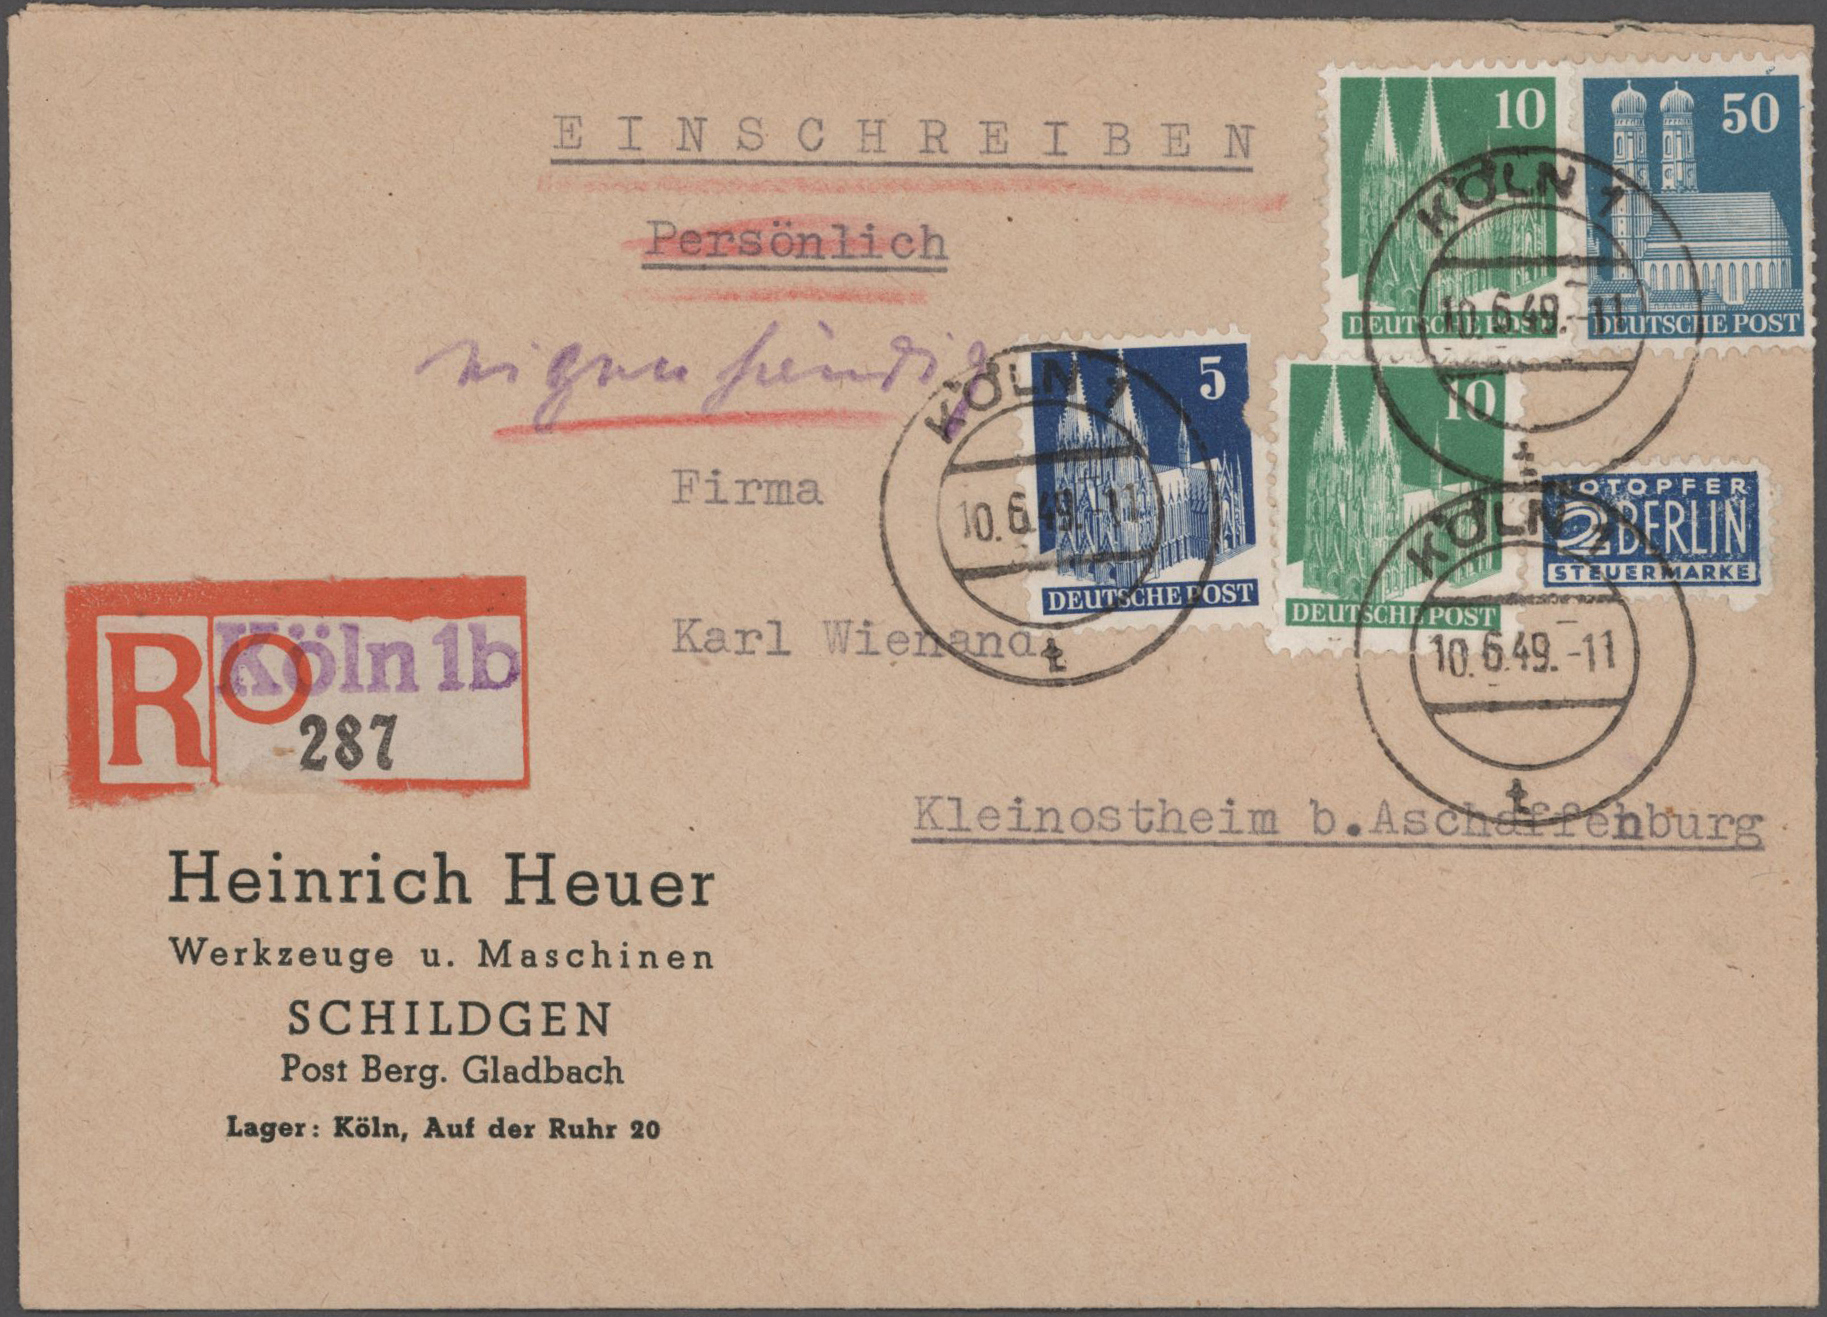 Lot 26115 - nachlässe  -  Auktionshaus Christoph Gärtner GmbH & Co. KG Sale #46 Gollcetions Germany - including the suplement